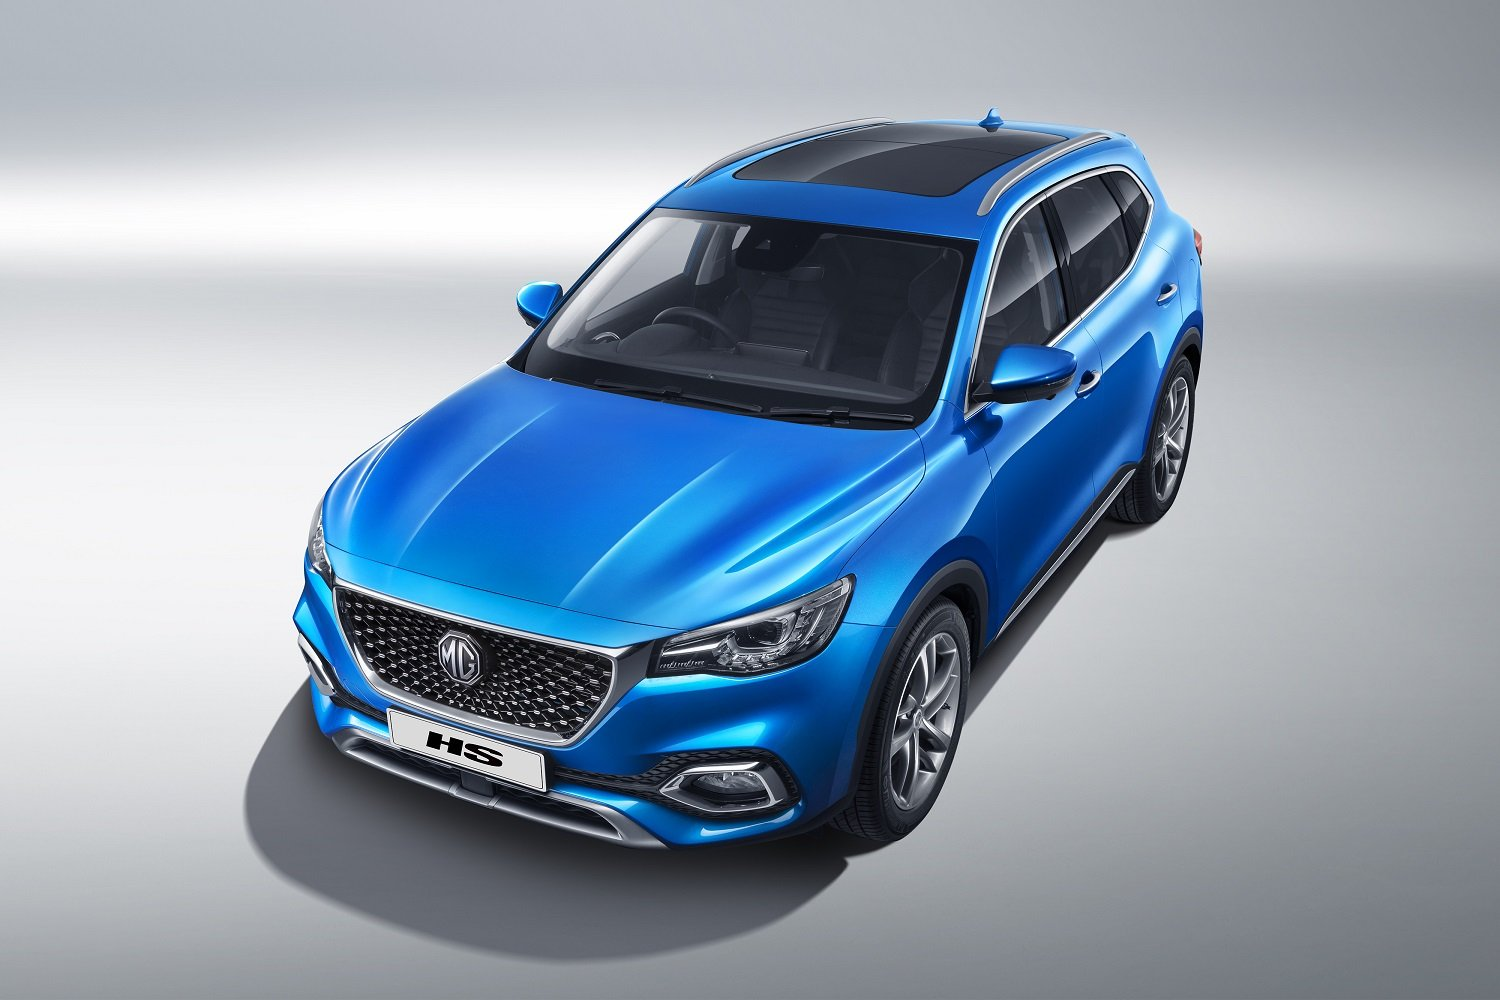 New MG HS plug-in hybrid arrives with 32-mile electric